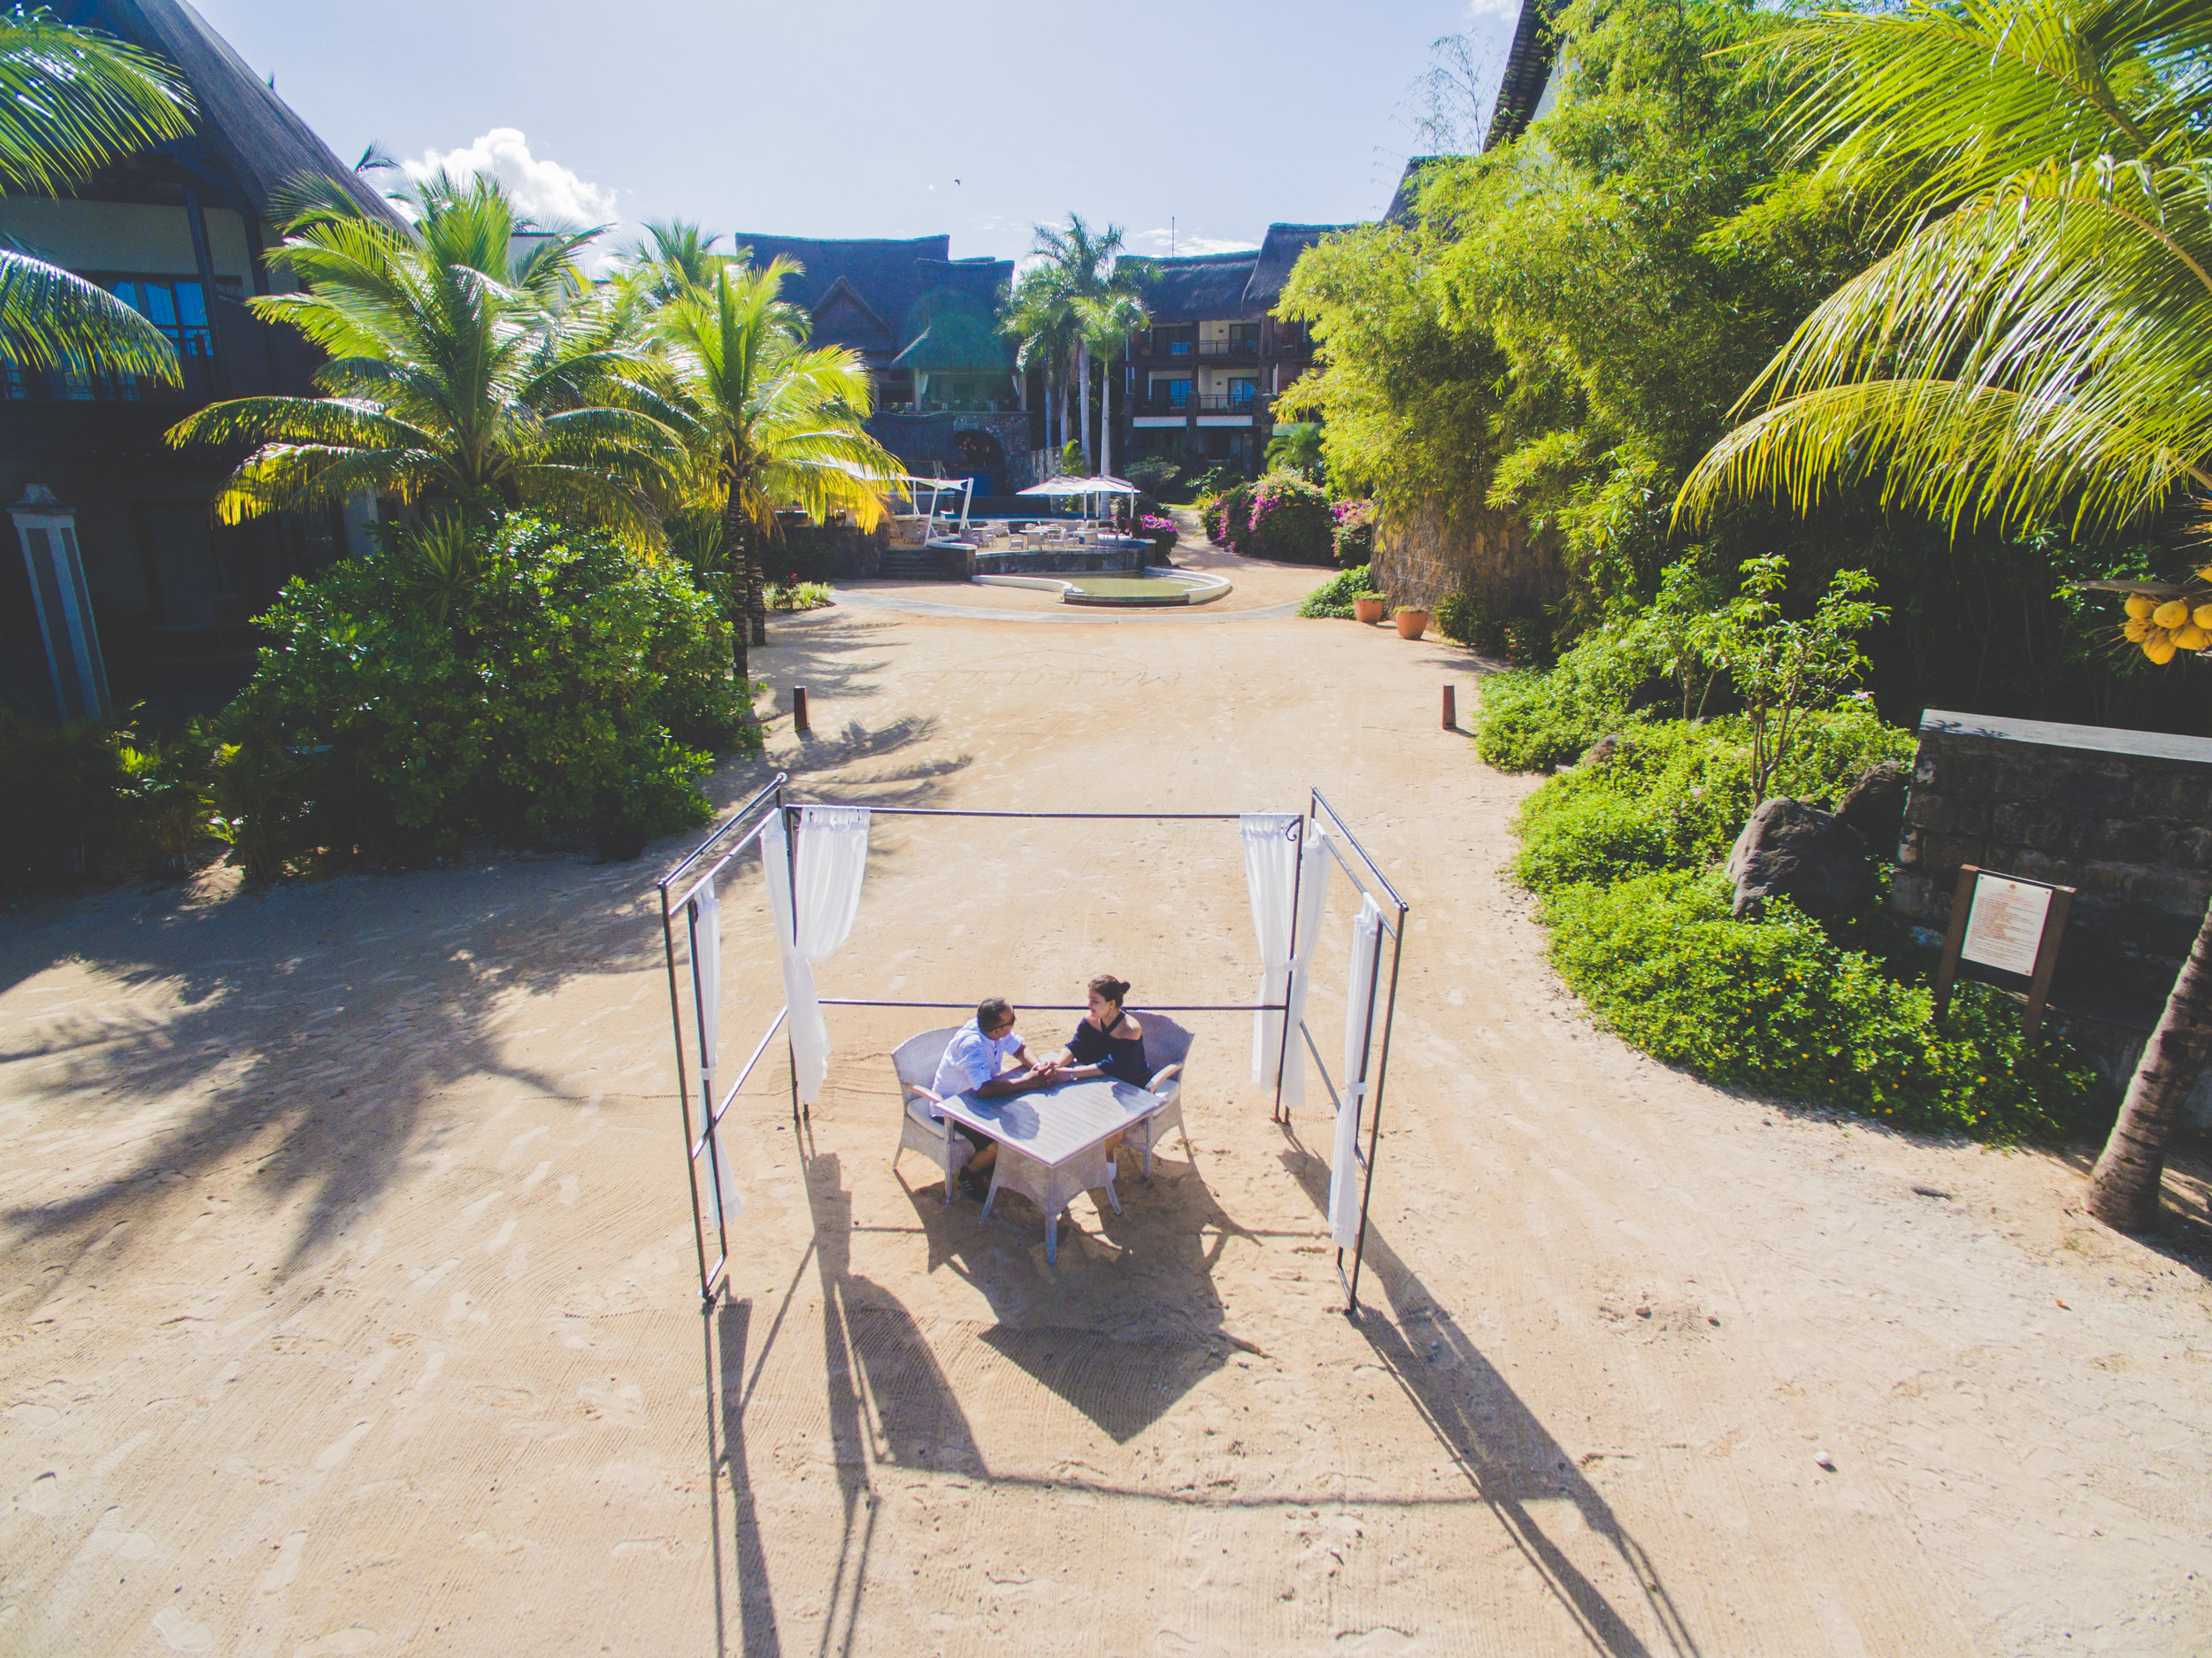 Drone photo of couple on a beach